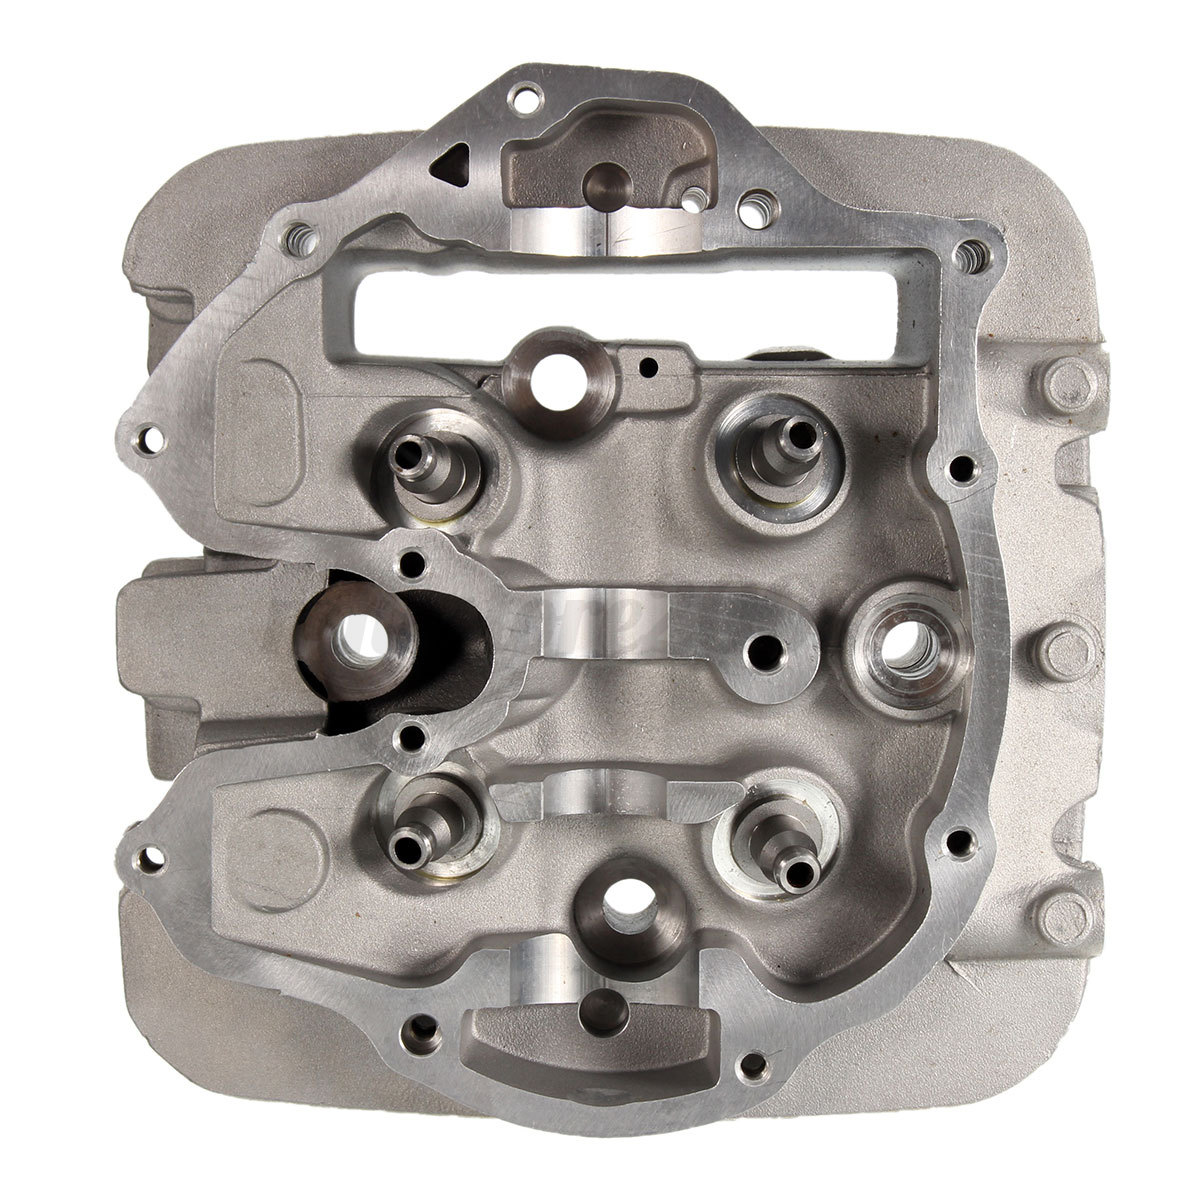 hight resolution of  03 400ex new cylinder head valve cover for honda trx400ex 1999 2008